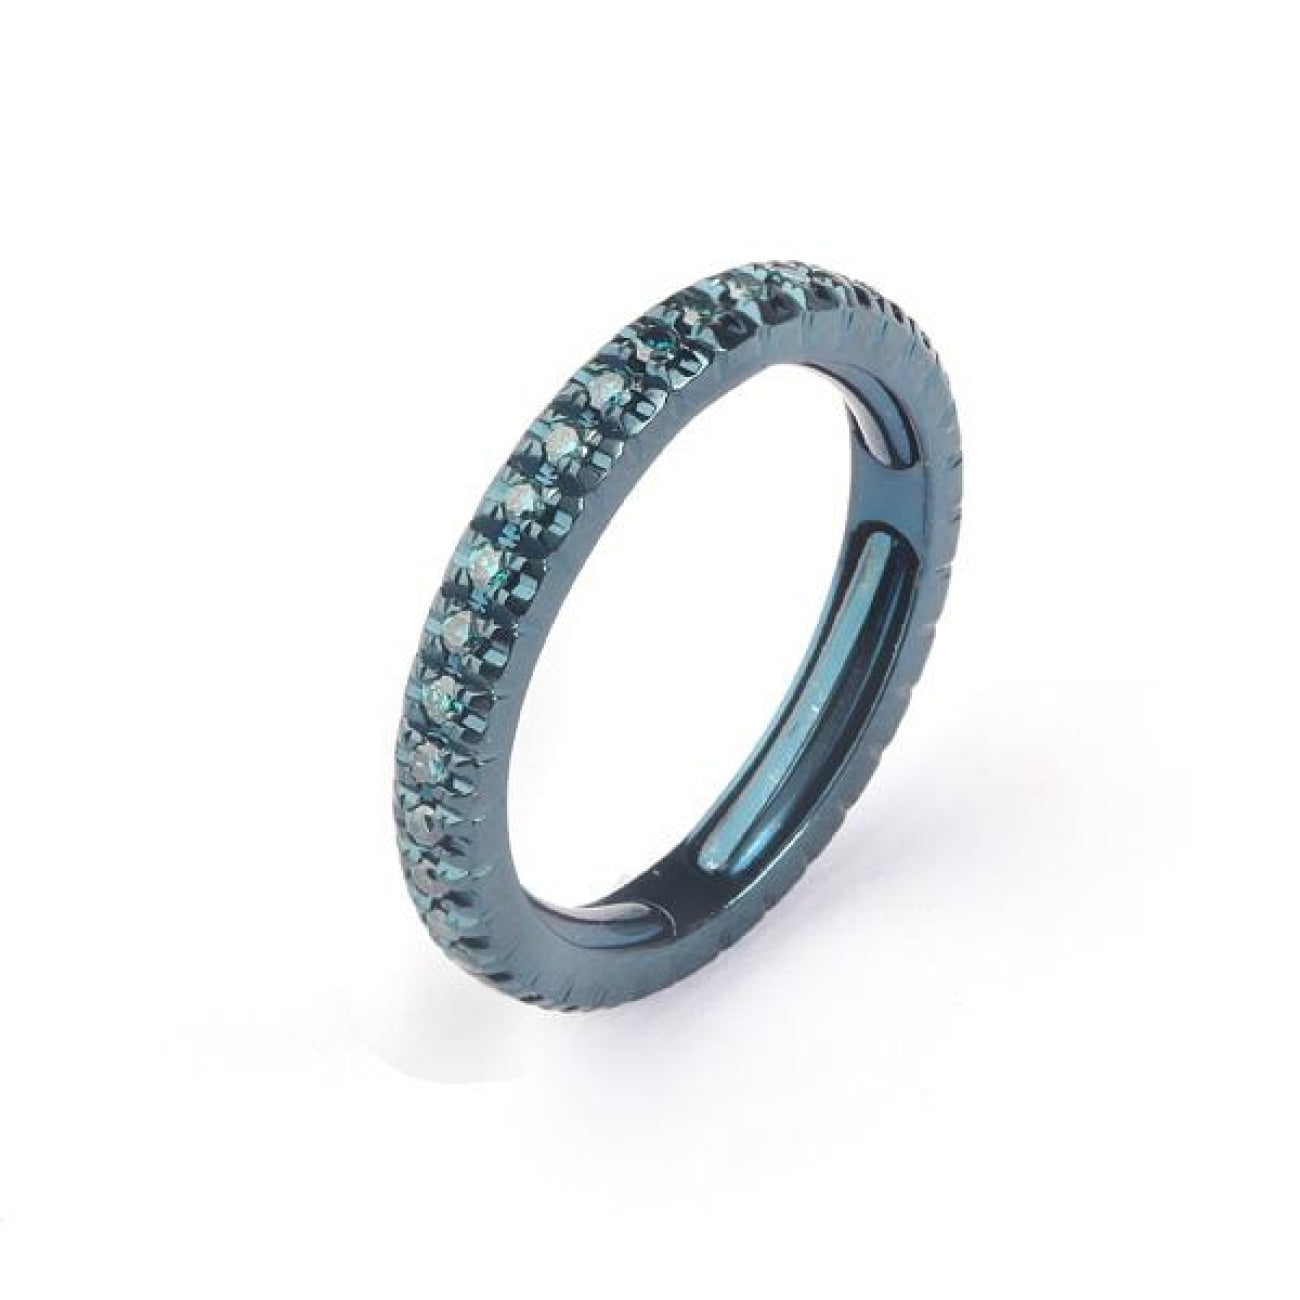 Facet Barcelona Jewelry - Blue Rhodium Gold Contemporary Full Eternity Ring | Manfredi Jewels